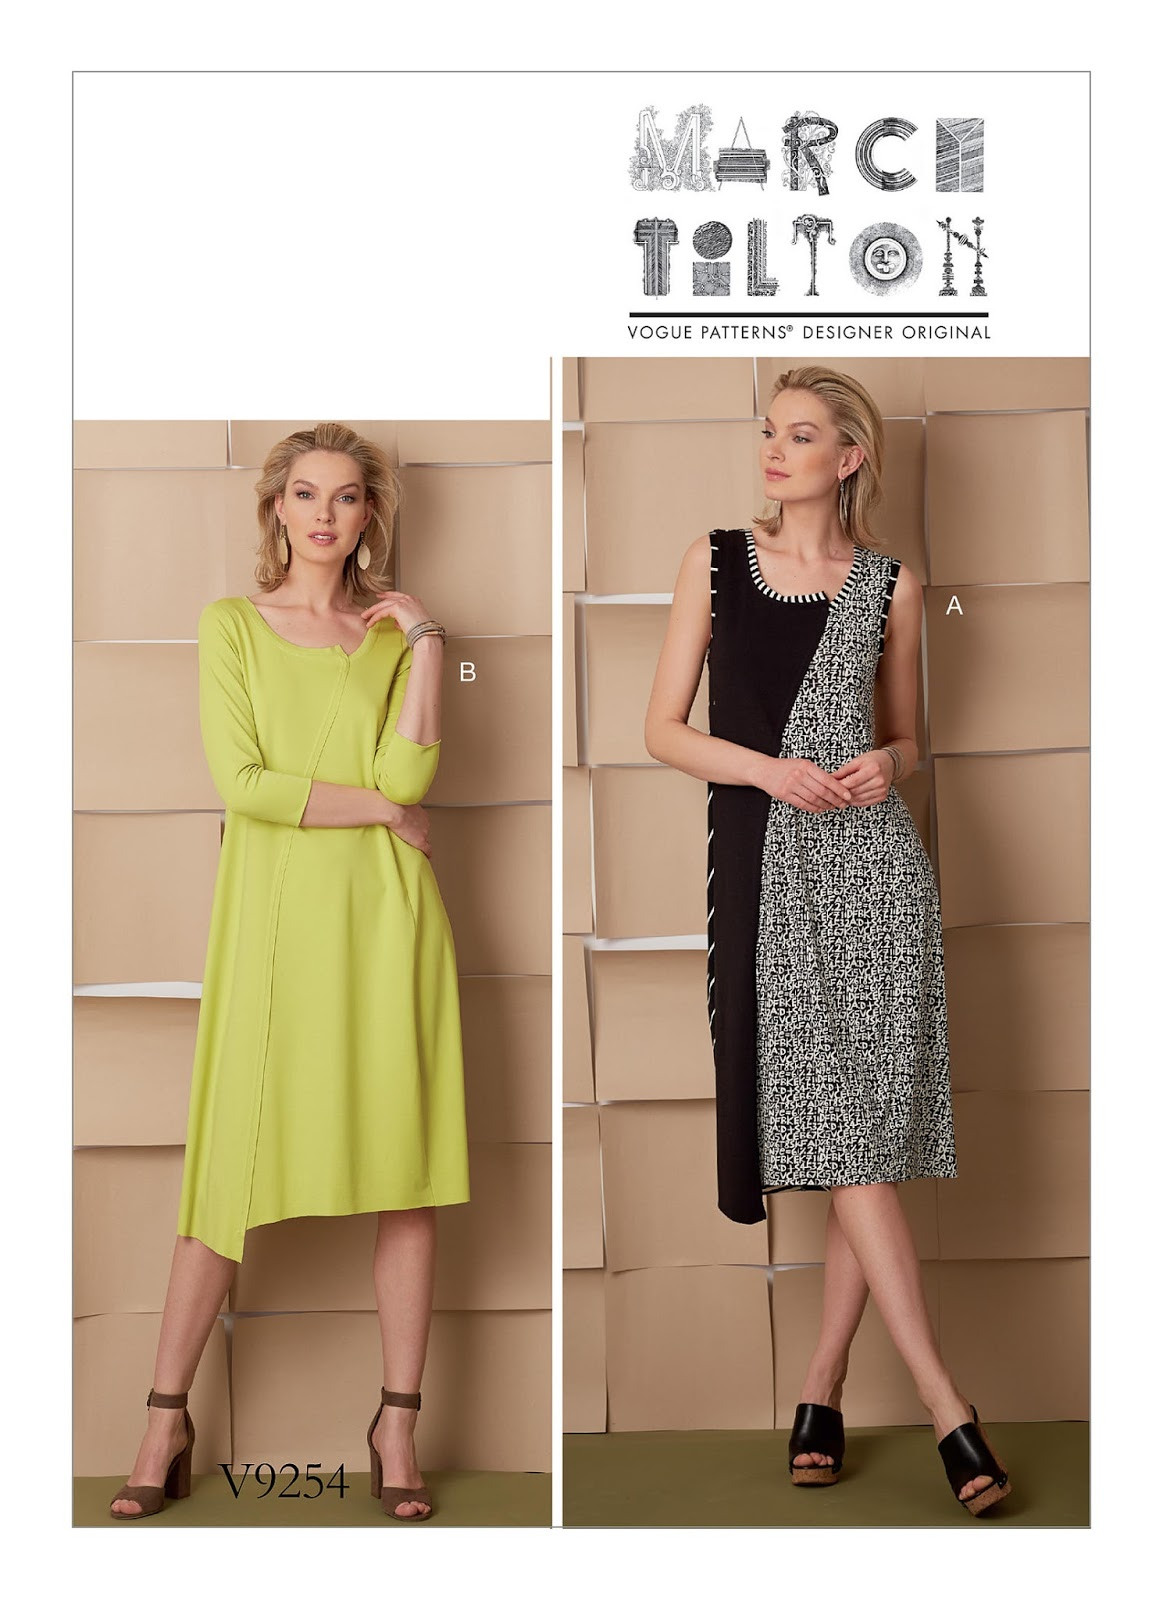 Sew Essentially Sew: In Sewing News Today...